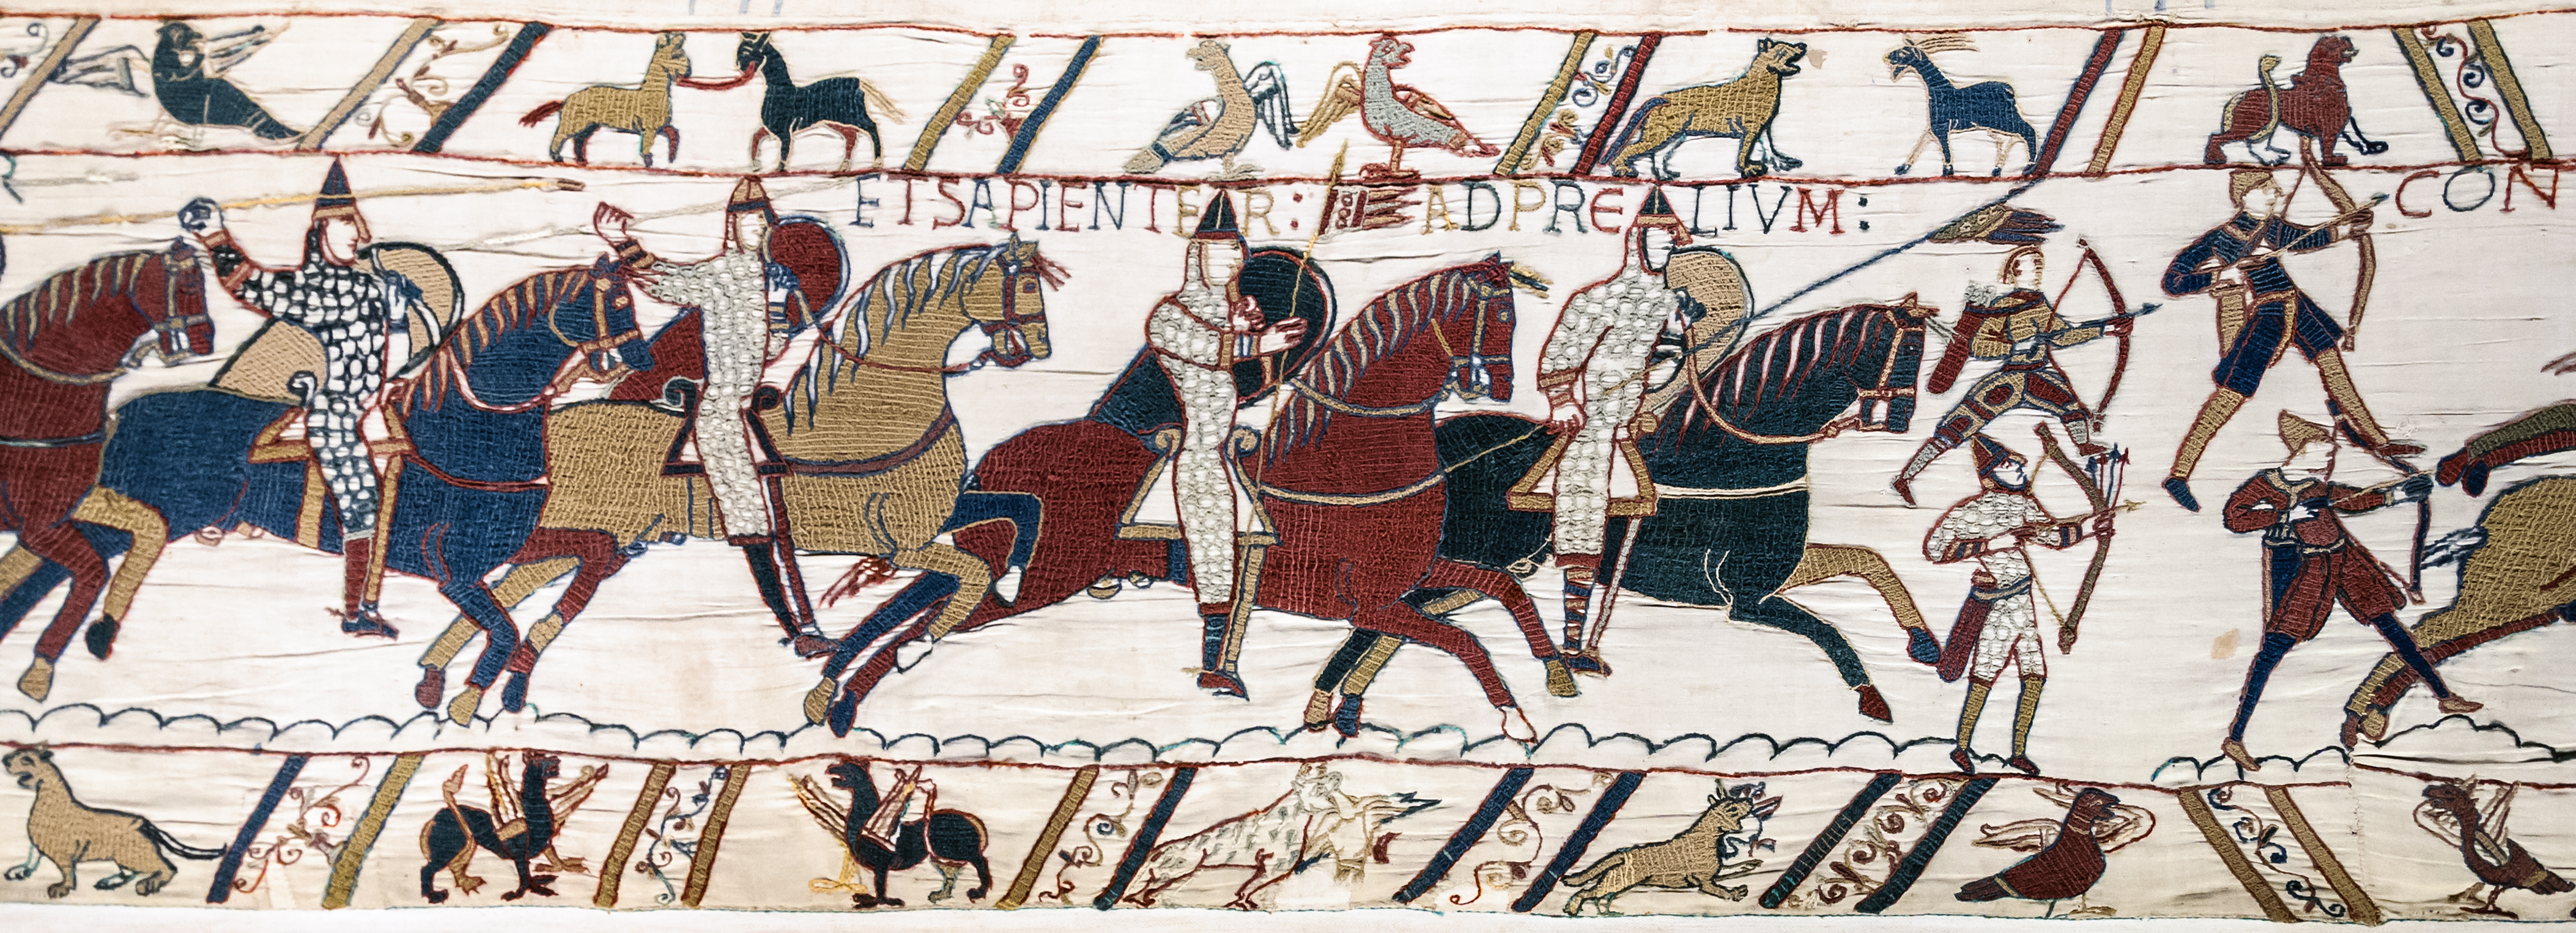 http://upload.wikimedia.org/wikipedia/commons/b/bc/Bayeux_Tapestry_scene51_Battle_of_Hastings_Norman_knights_and_archers.jpg